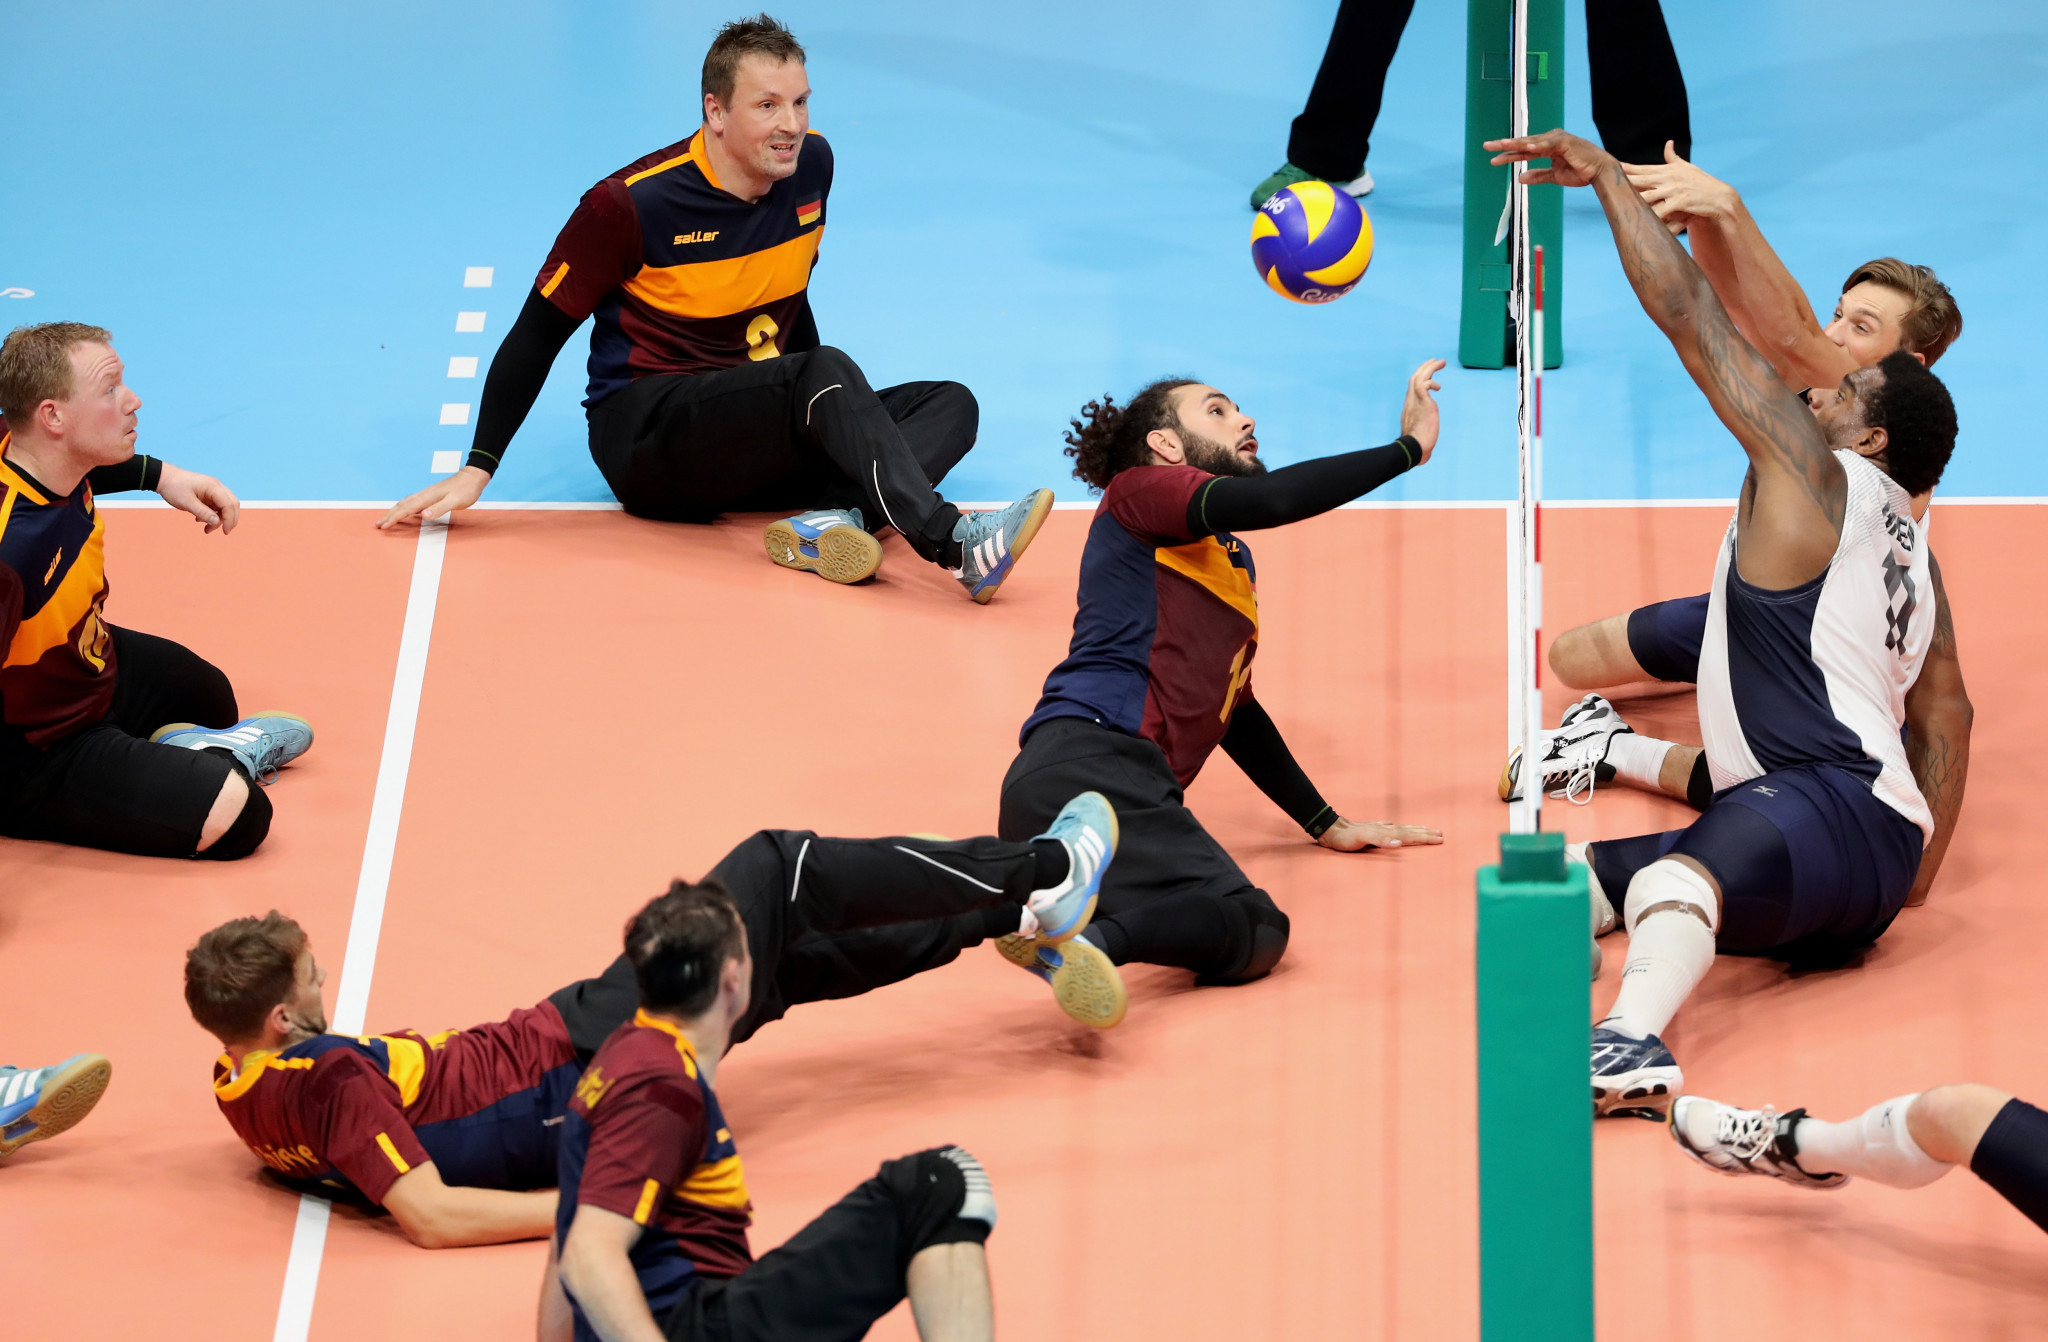 Duisburg to host re-arranged World ParaVolley Men's Paralympic Qualifier